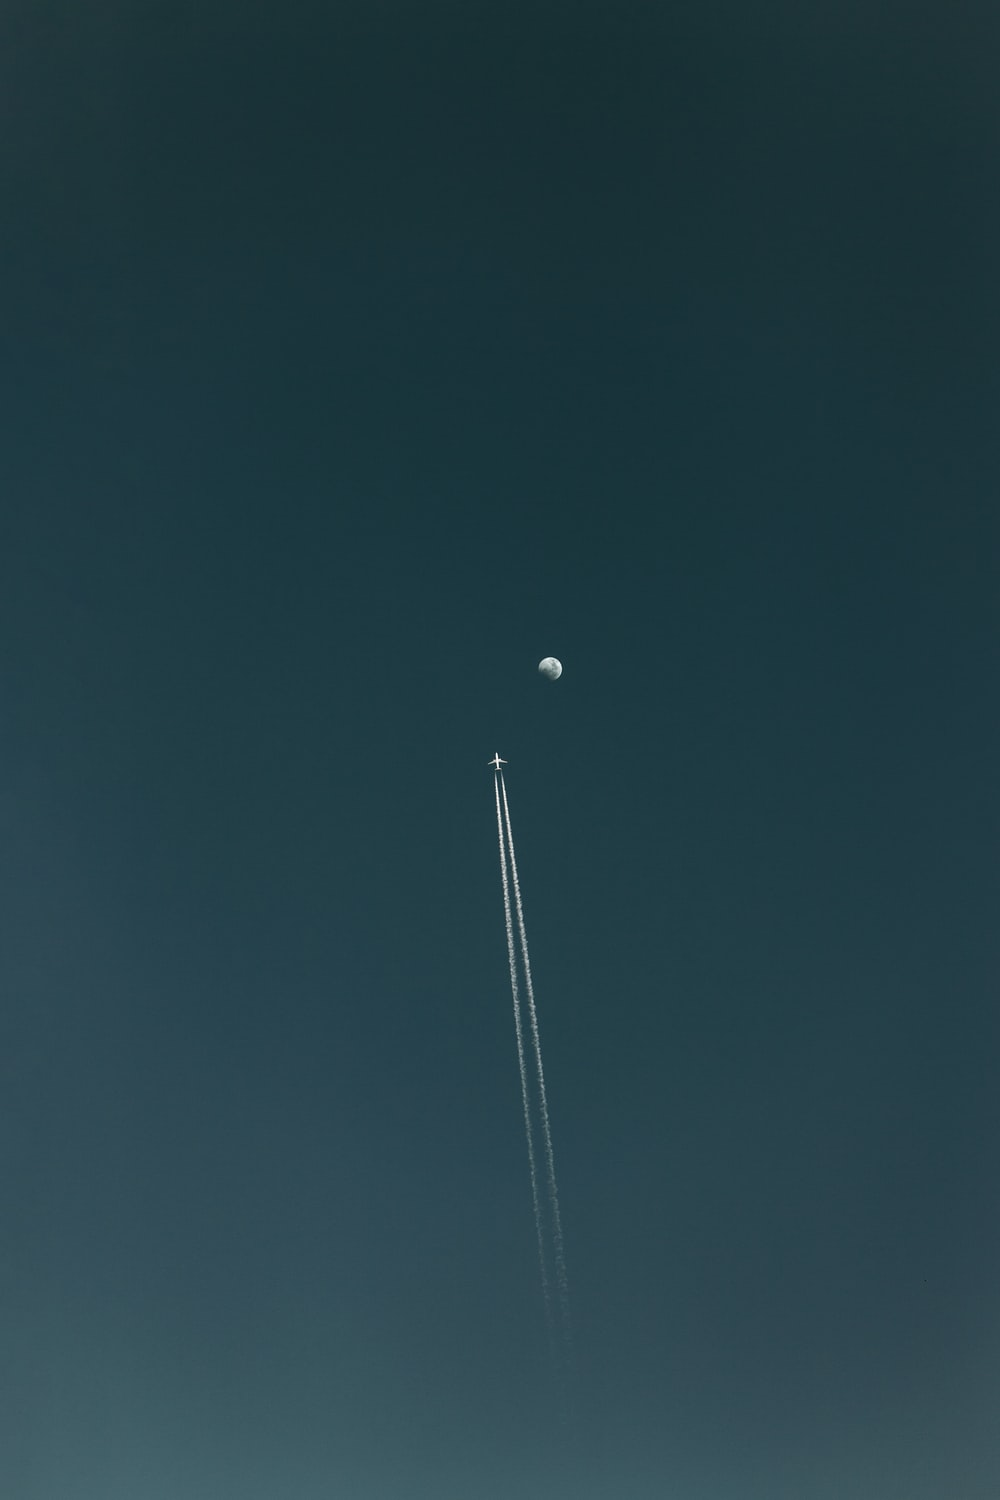 flying plane with contrail during nighttime